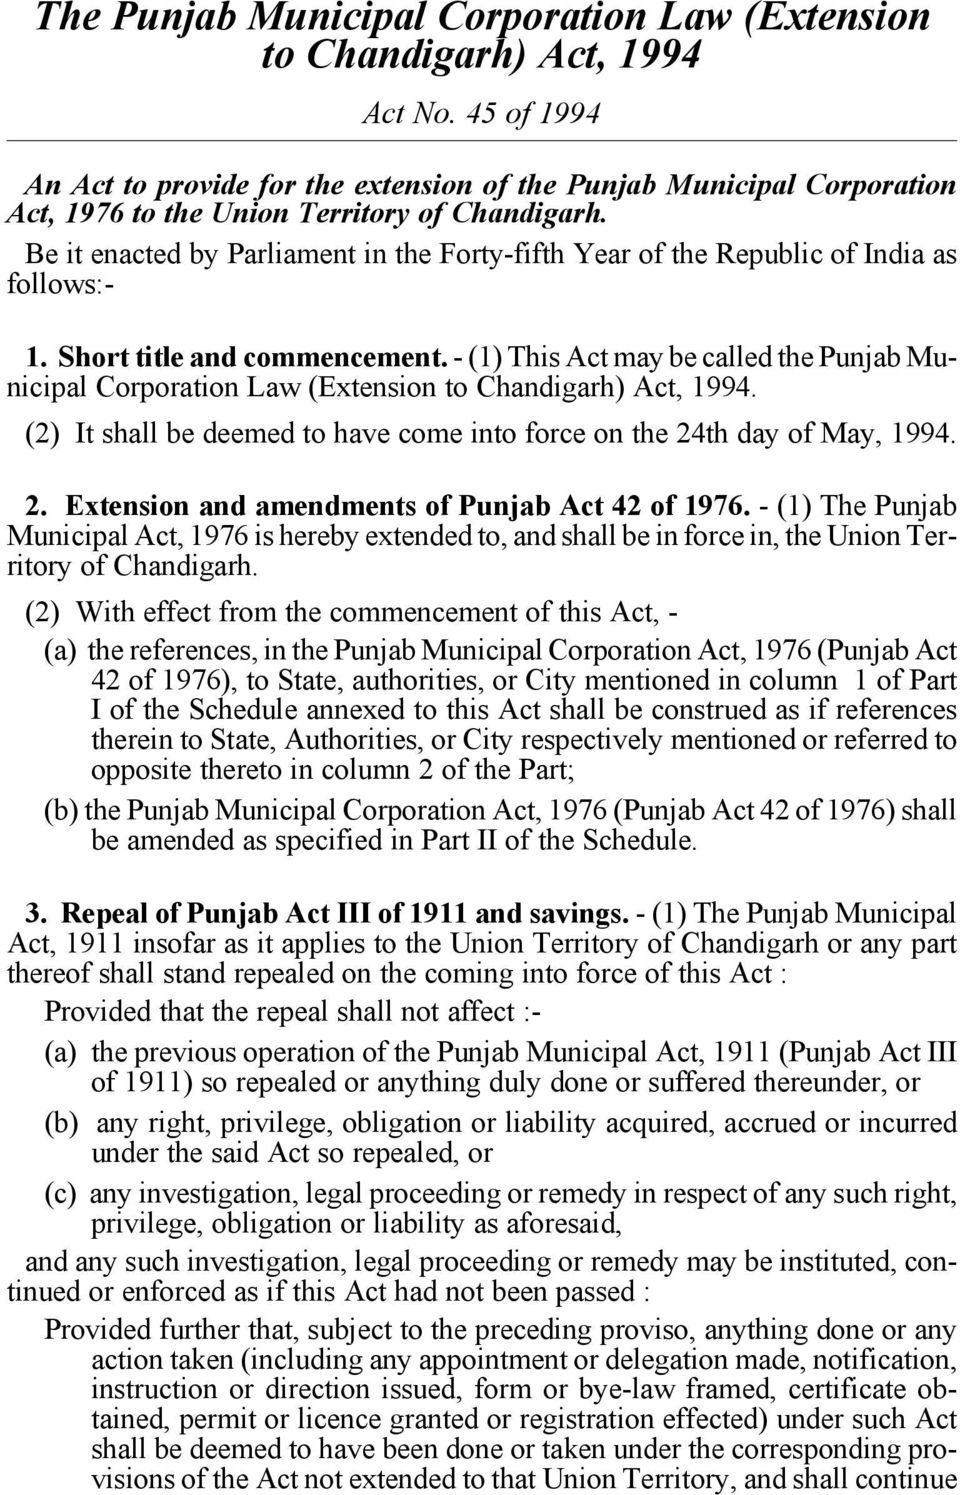 Be it enacted by Parliament in the Forty-fifth Year of the Republic of India as follows:- Section 1 1. Short title and commencement.